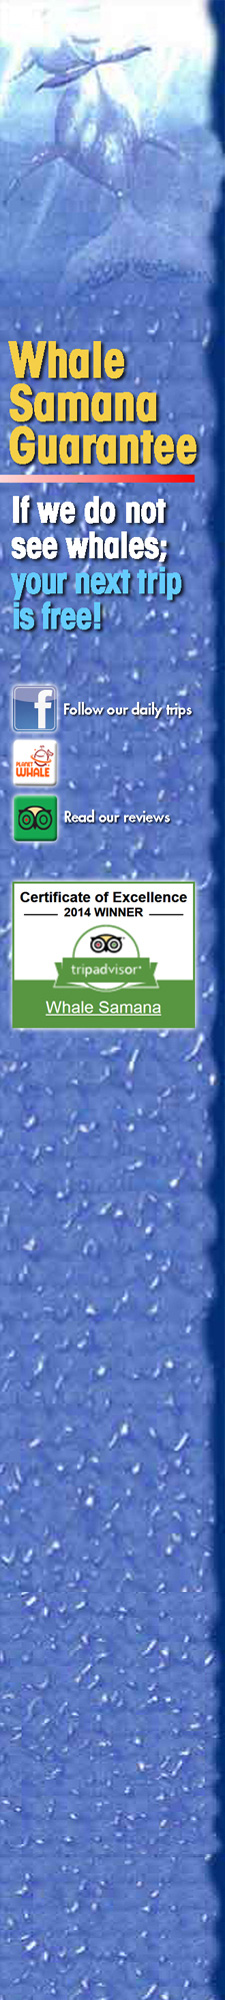 Samana Dominican Republic Whale Watching Tour for Cruise Ship - Whale Samana with Kim Beddall.